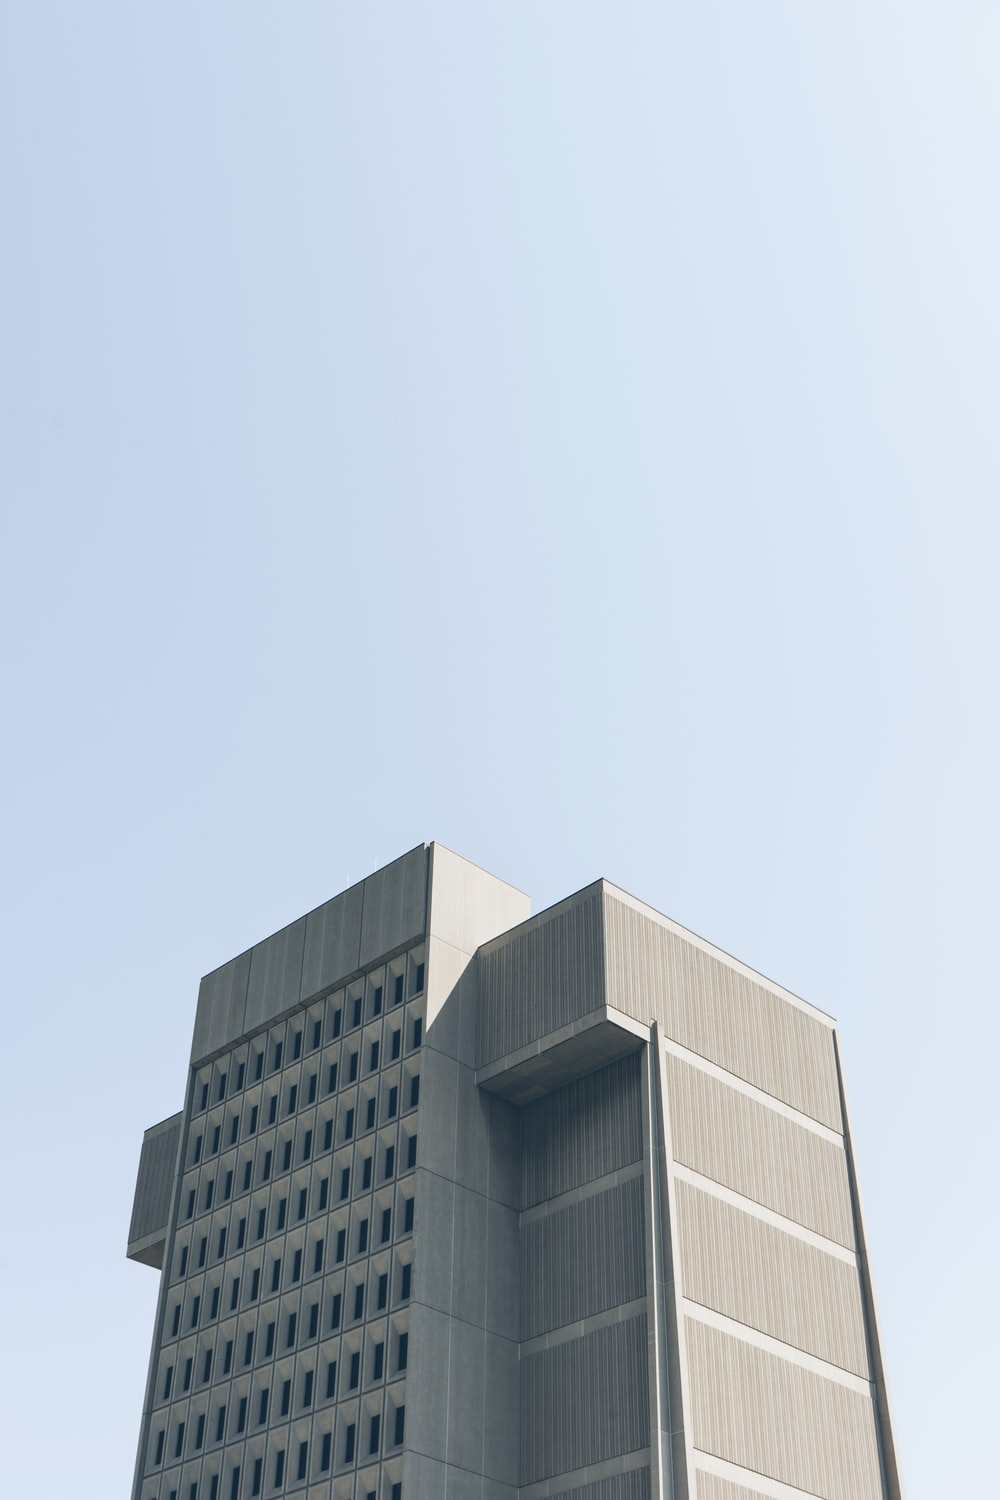 low angle photography of grey building